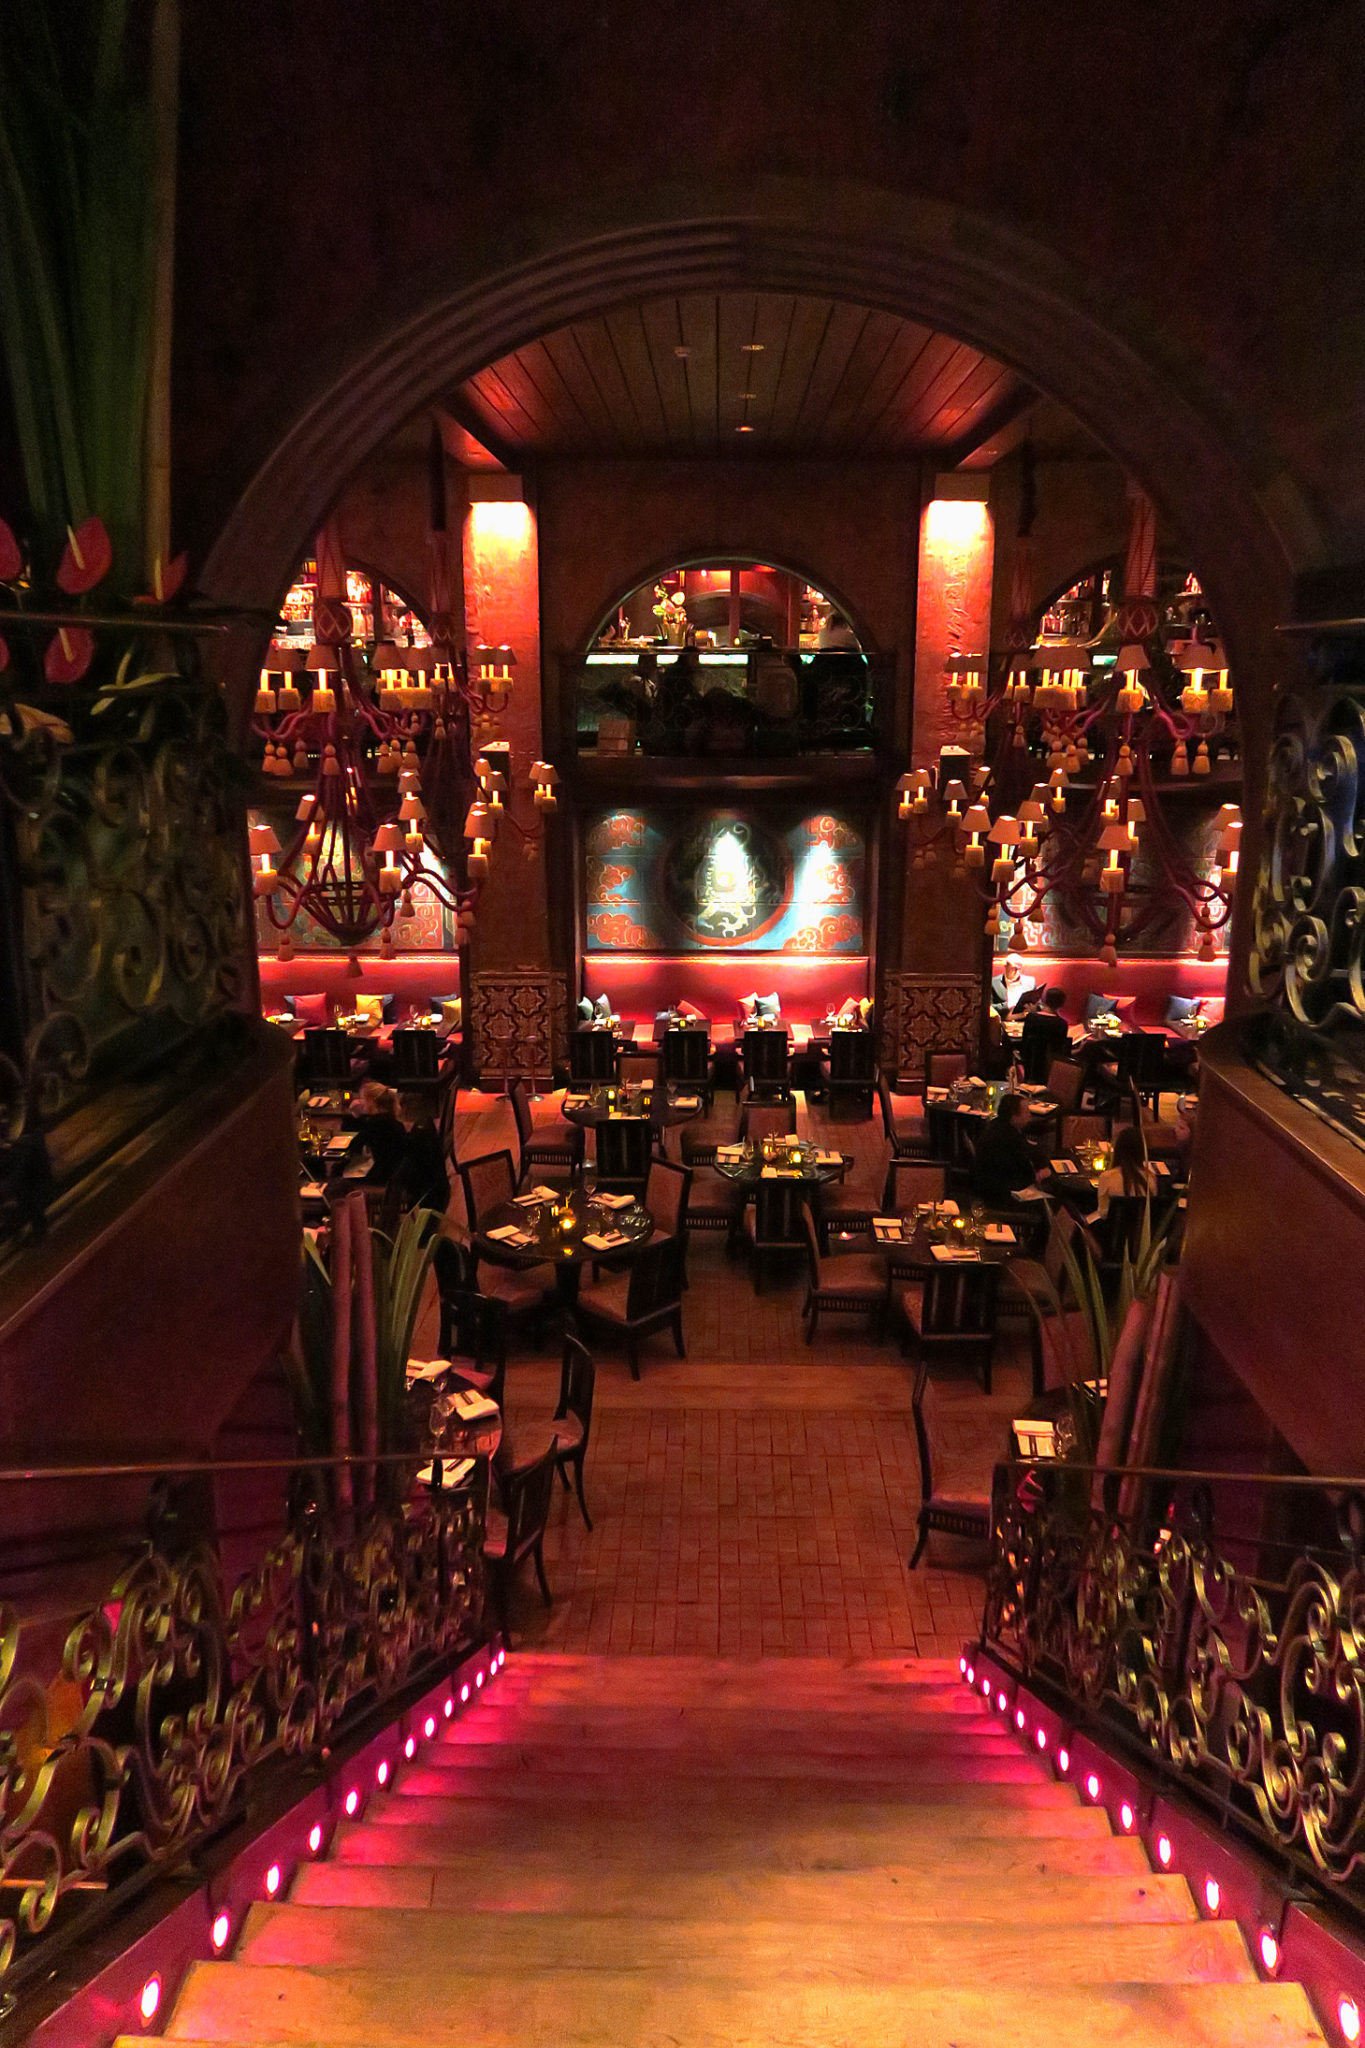 Hemaposesesvalises_buddha_bar_paris_stairs_restaurant